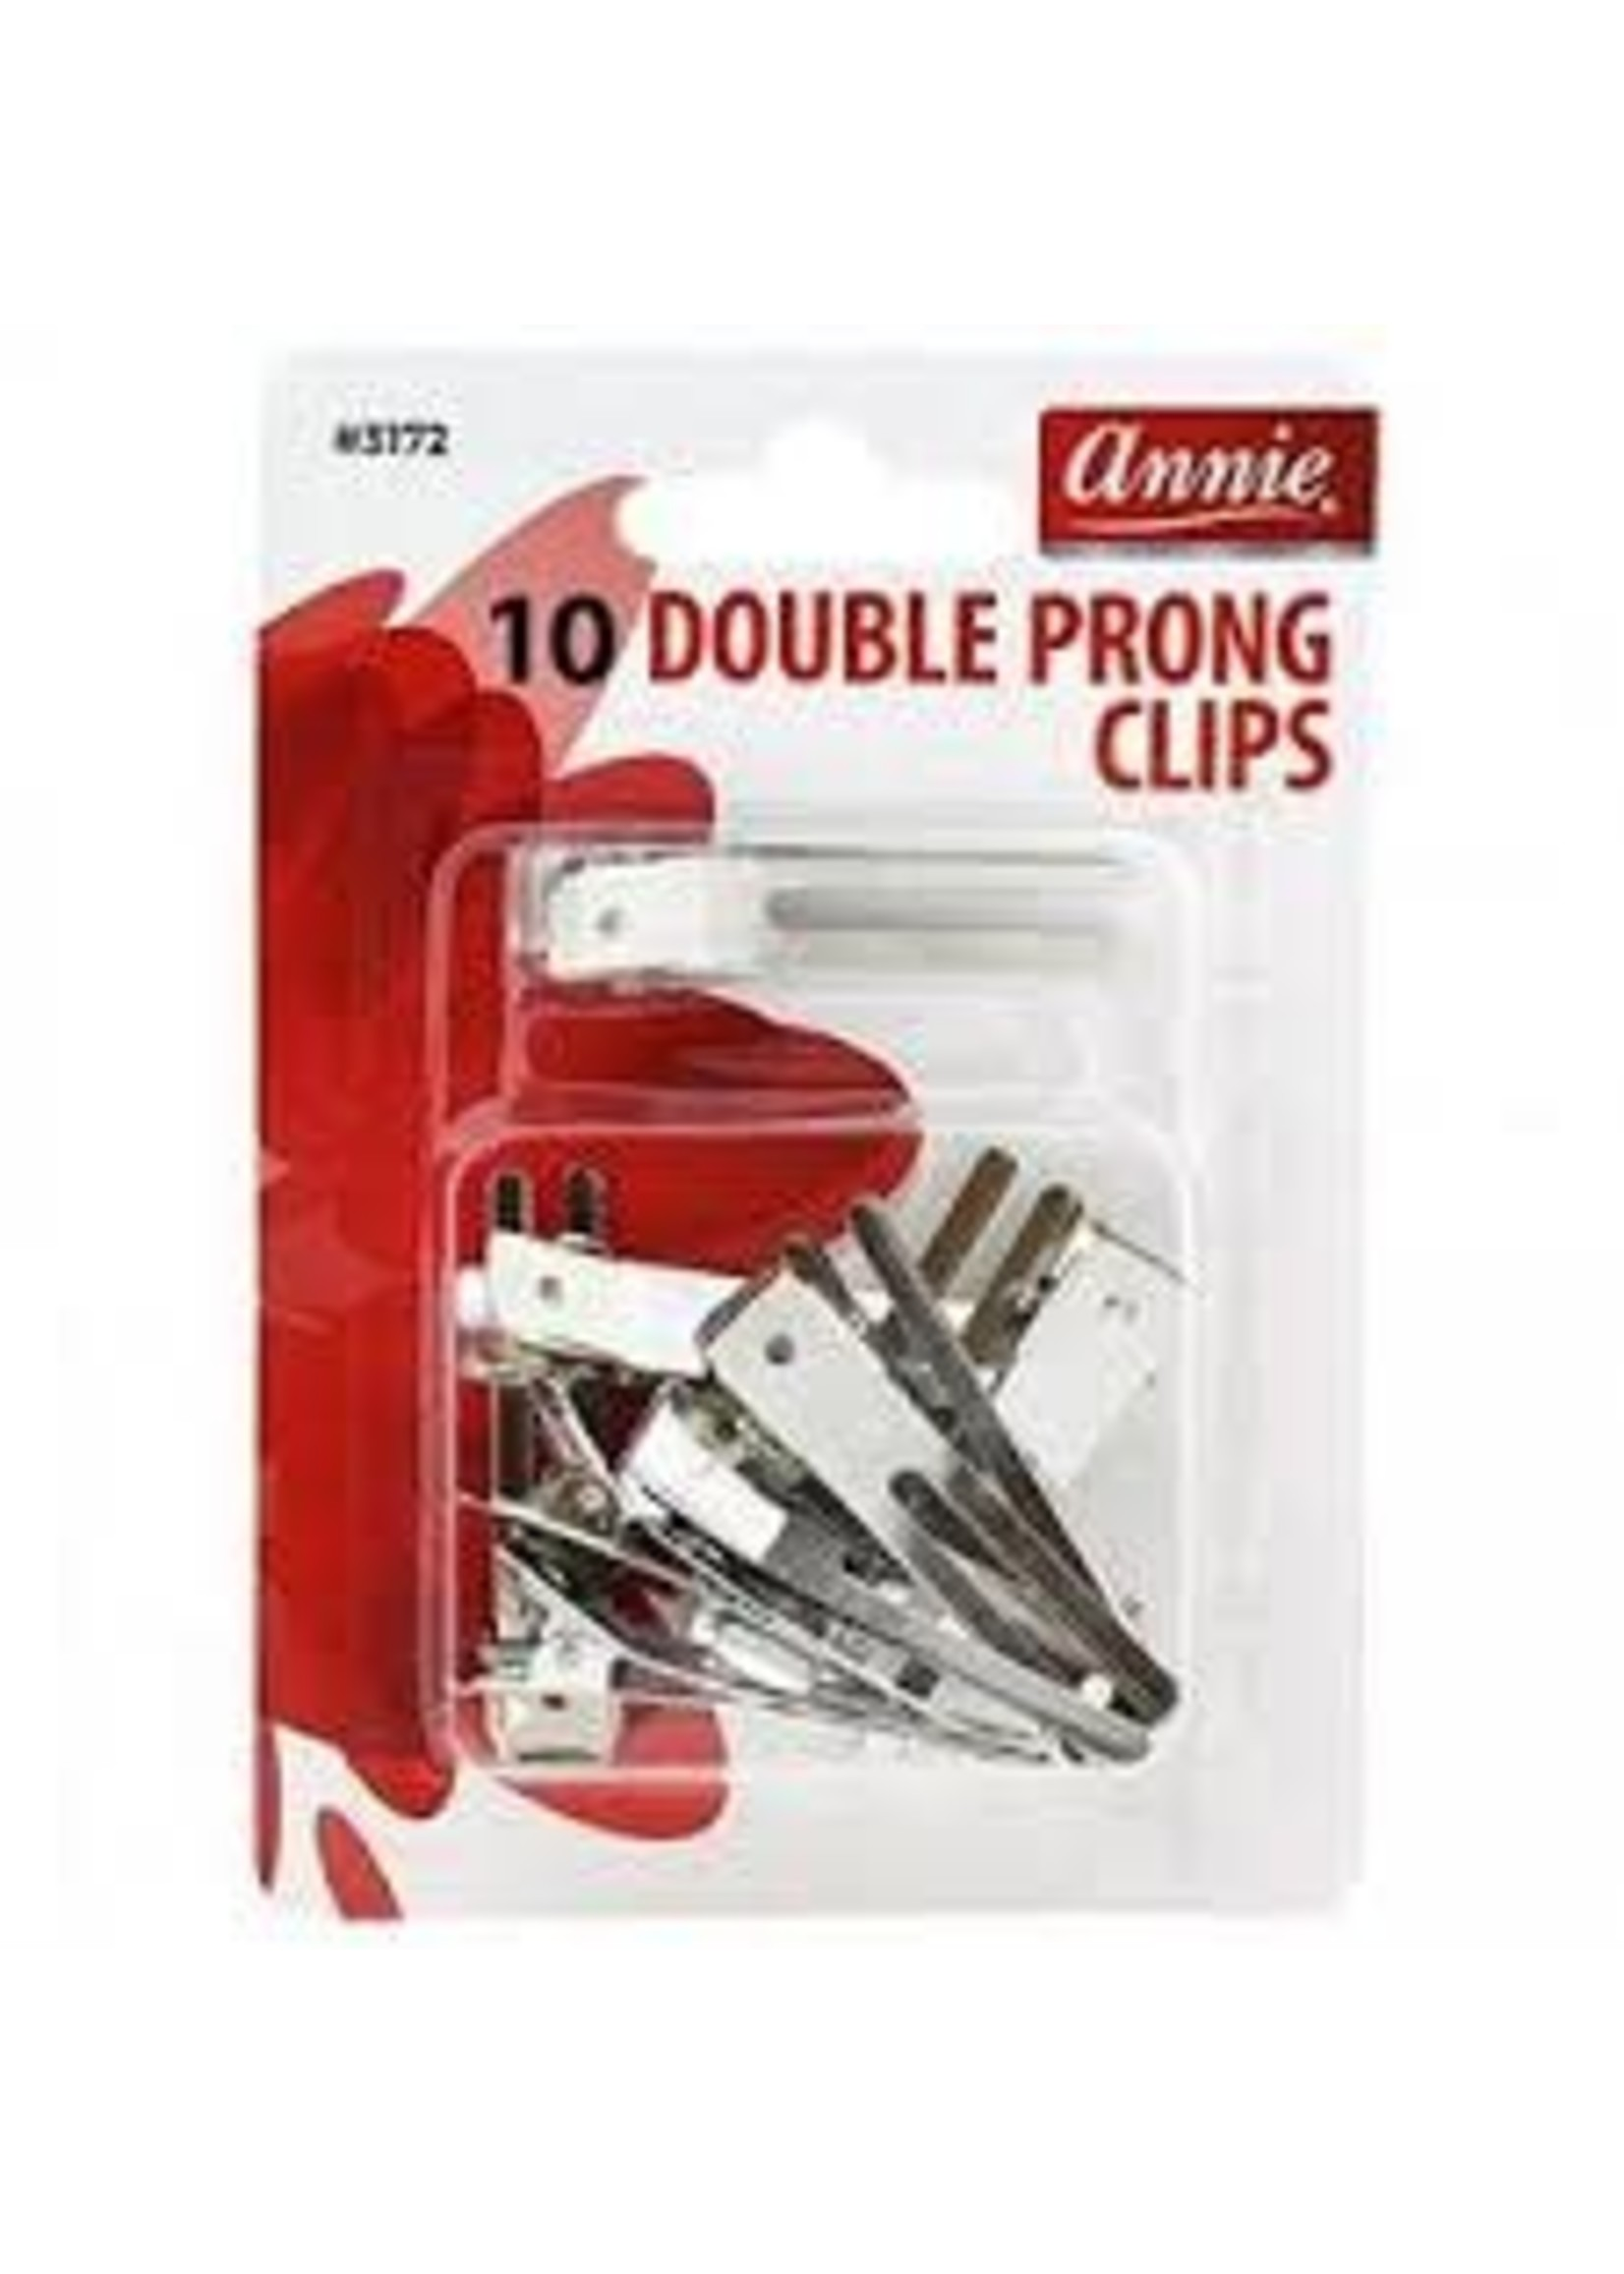 Annie Prong Double Clips 10CT